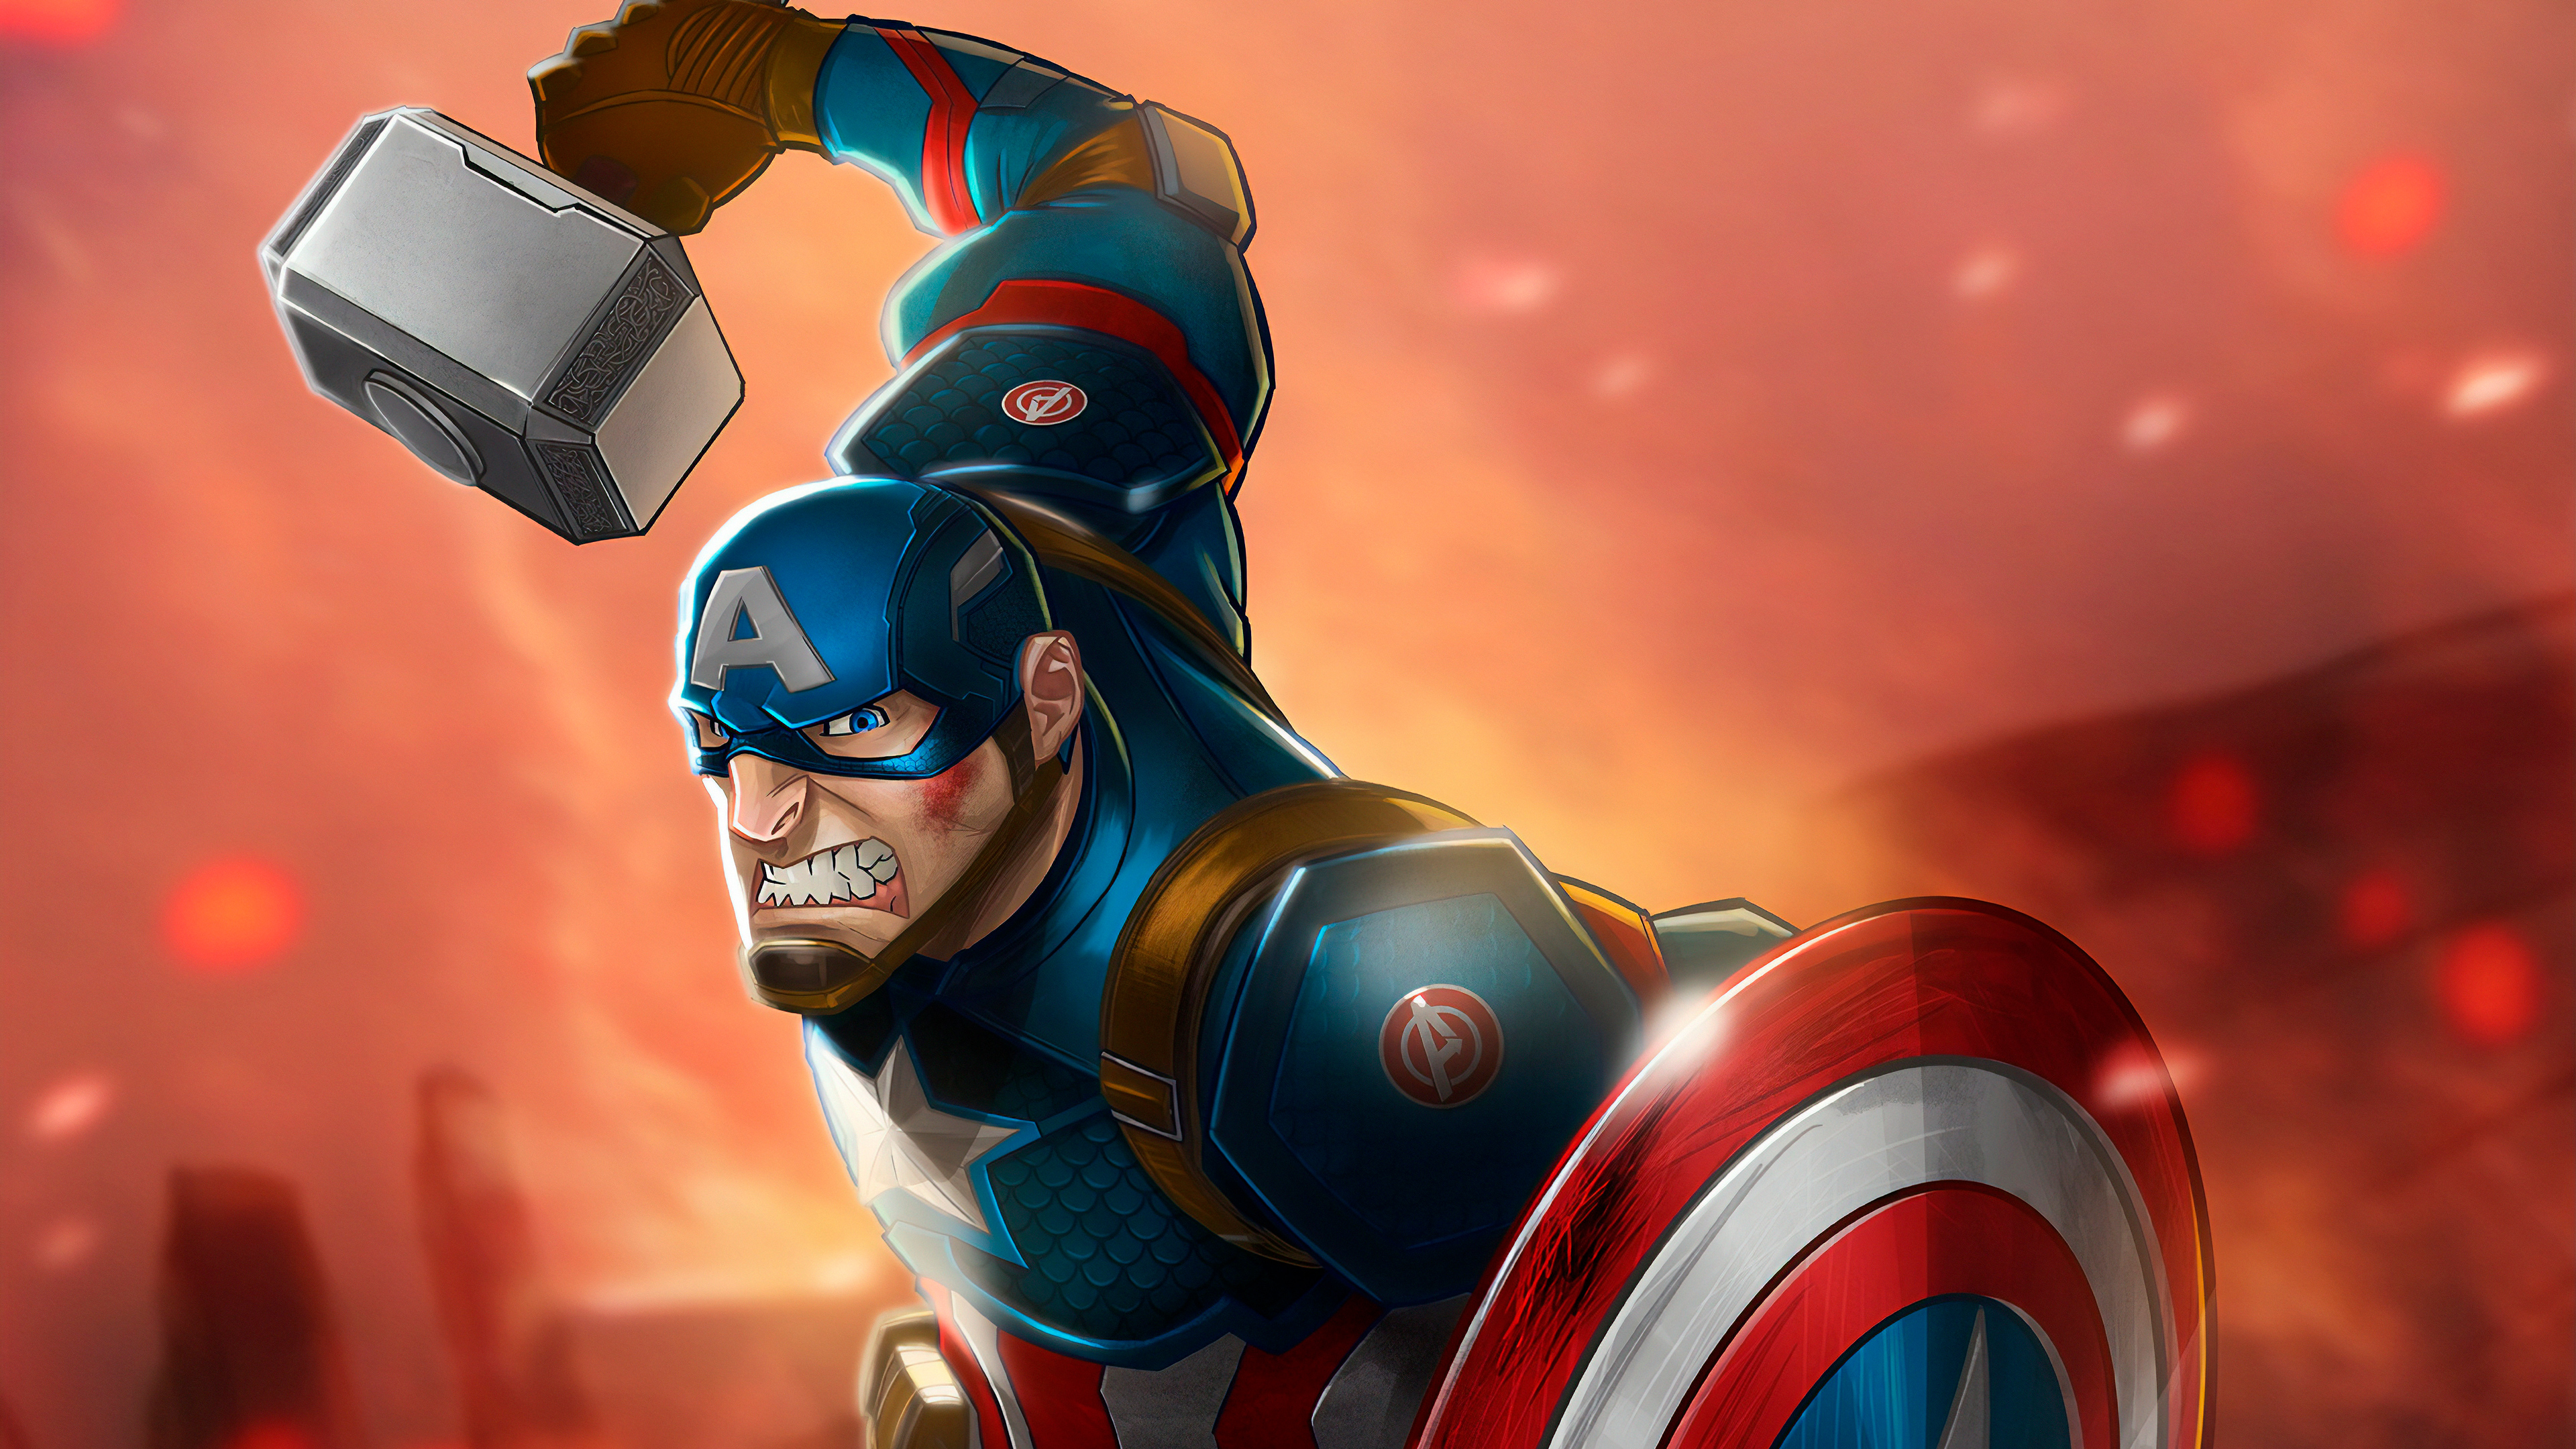 captain america mjolnir art hd 1570394695 - Captain America Mjolnir Art Hd - superheroes wallpapers, hd-wallpapers, captain america wallpapers, artwork wallpapers